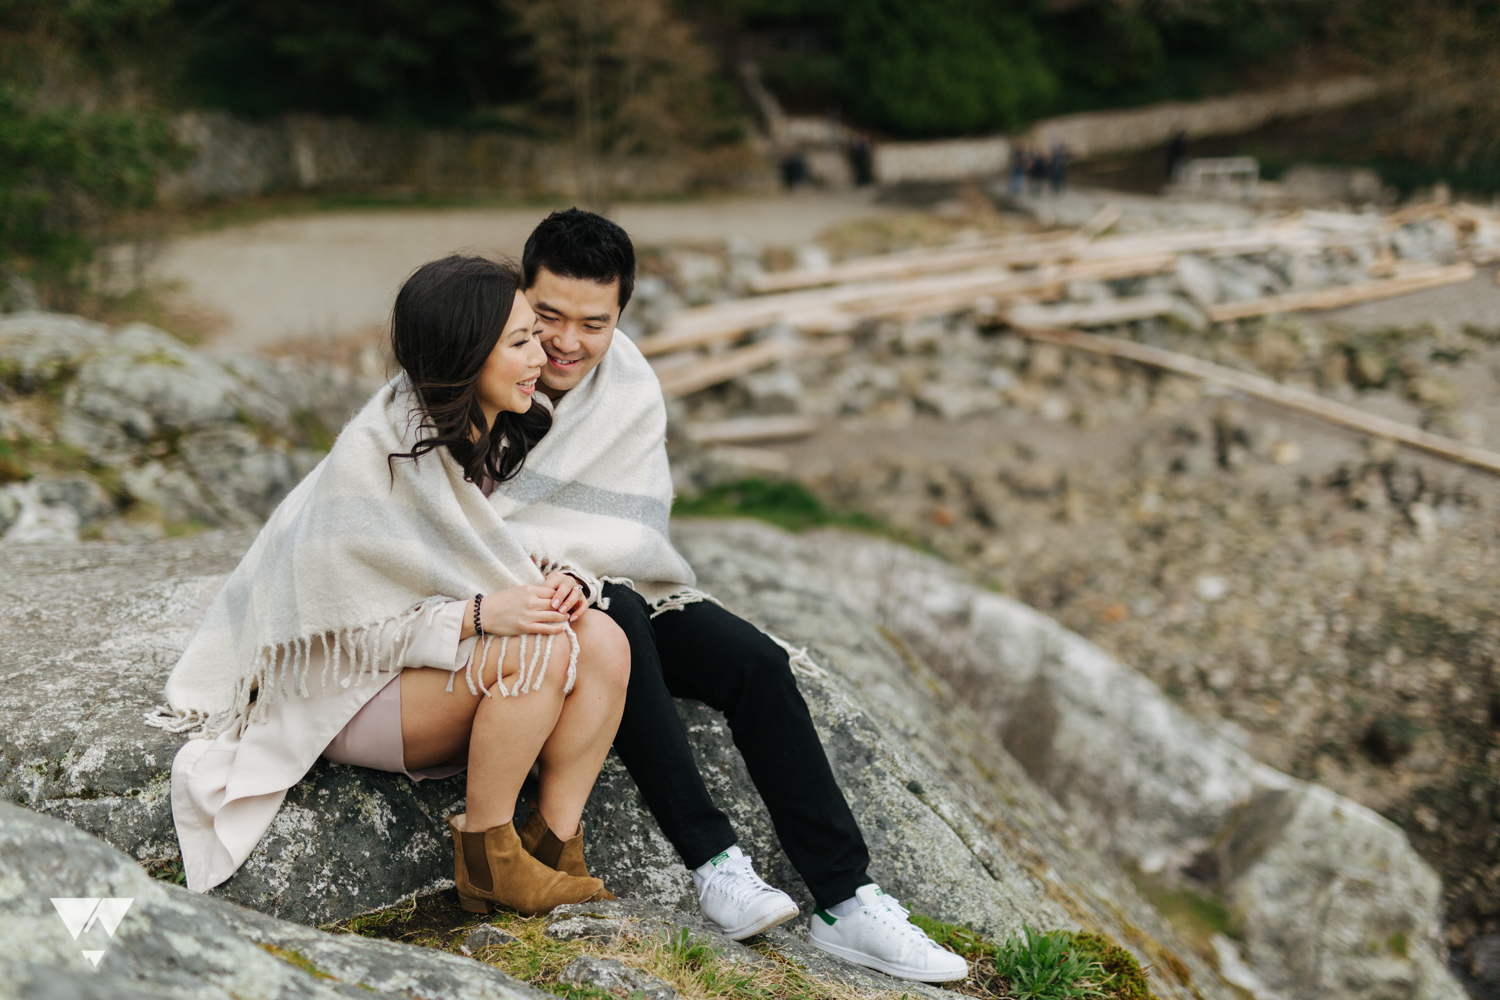 herafilms_prewedding_tammy_cedric_hera_selects_web-7.jpeg